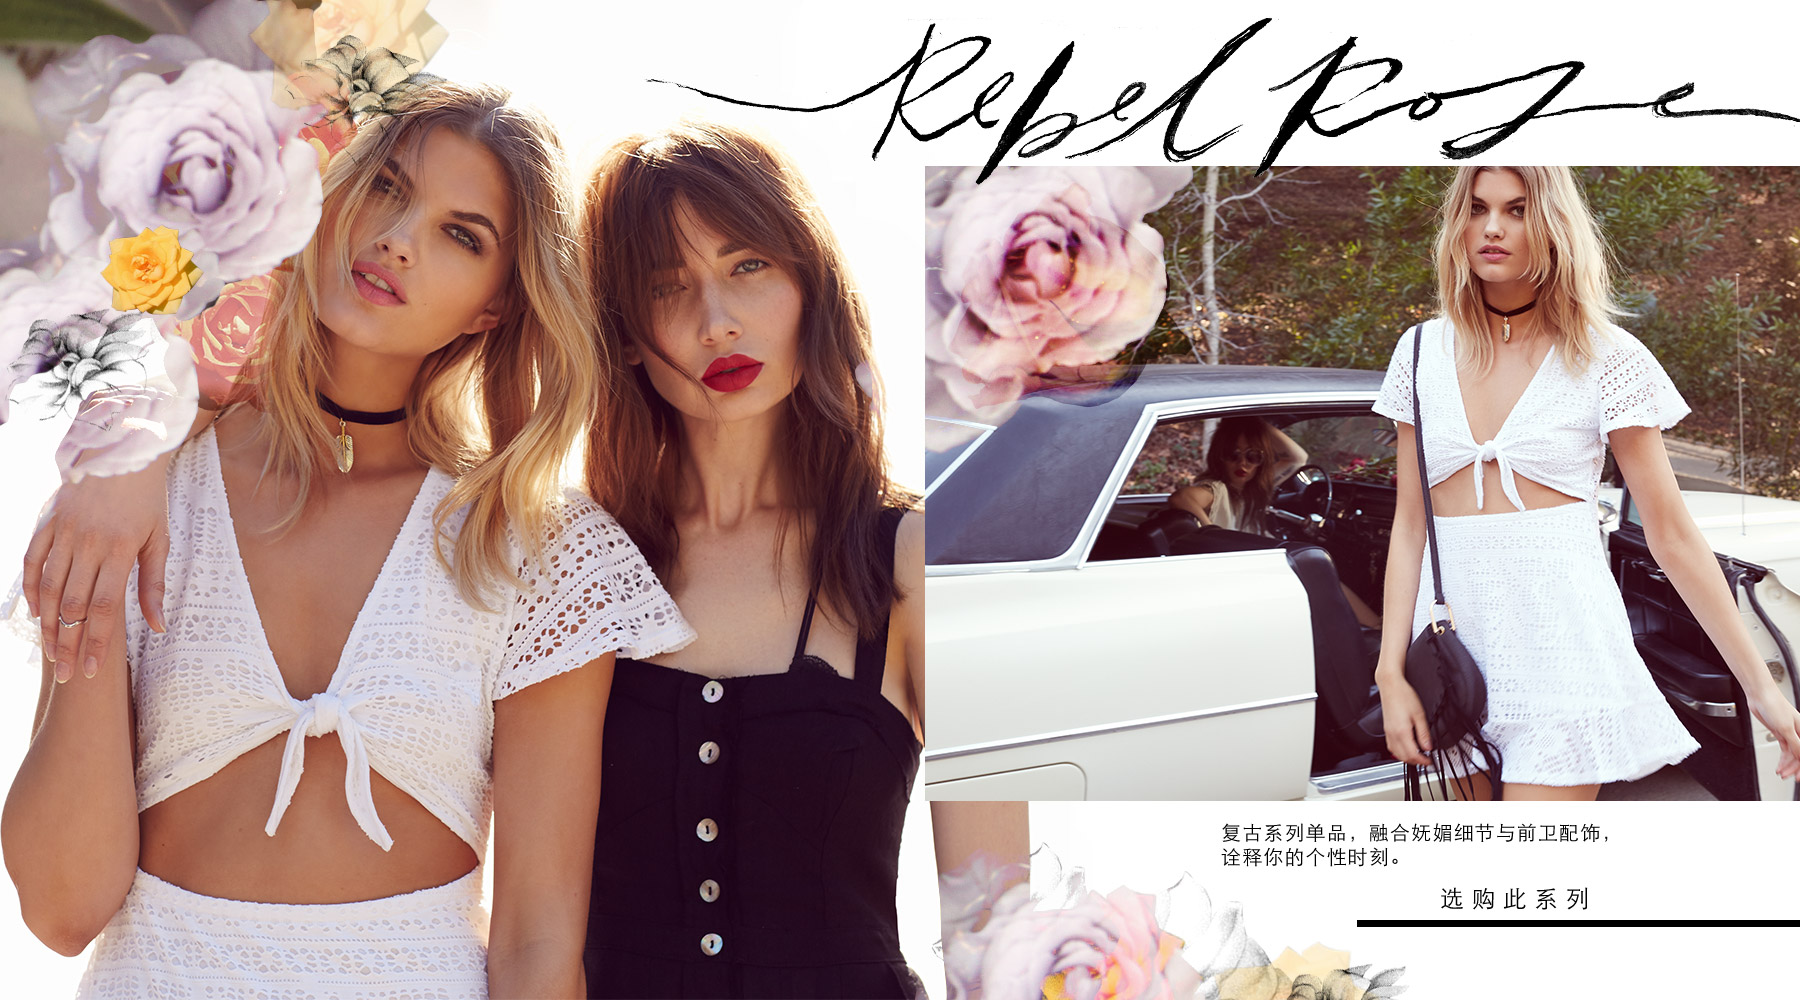 Shop the Rebel Rose Trend at Free People